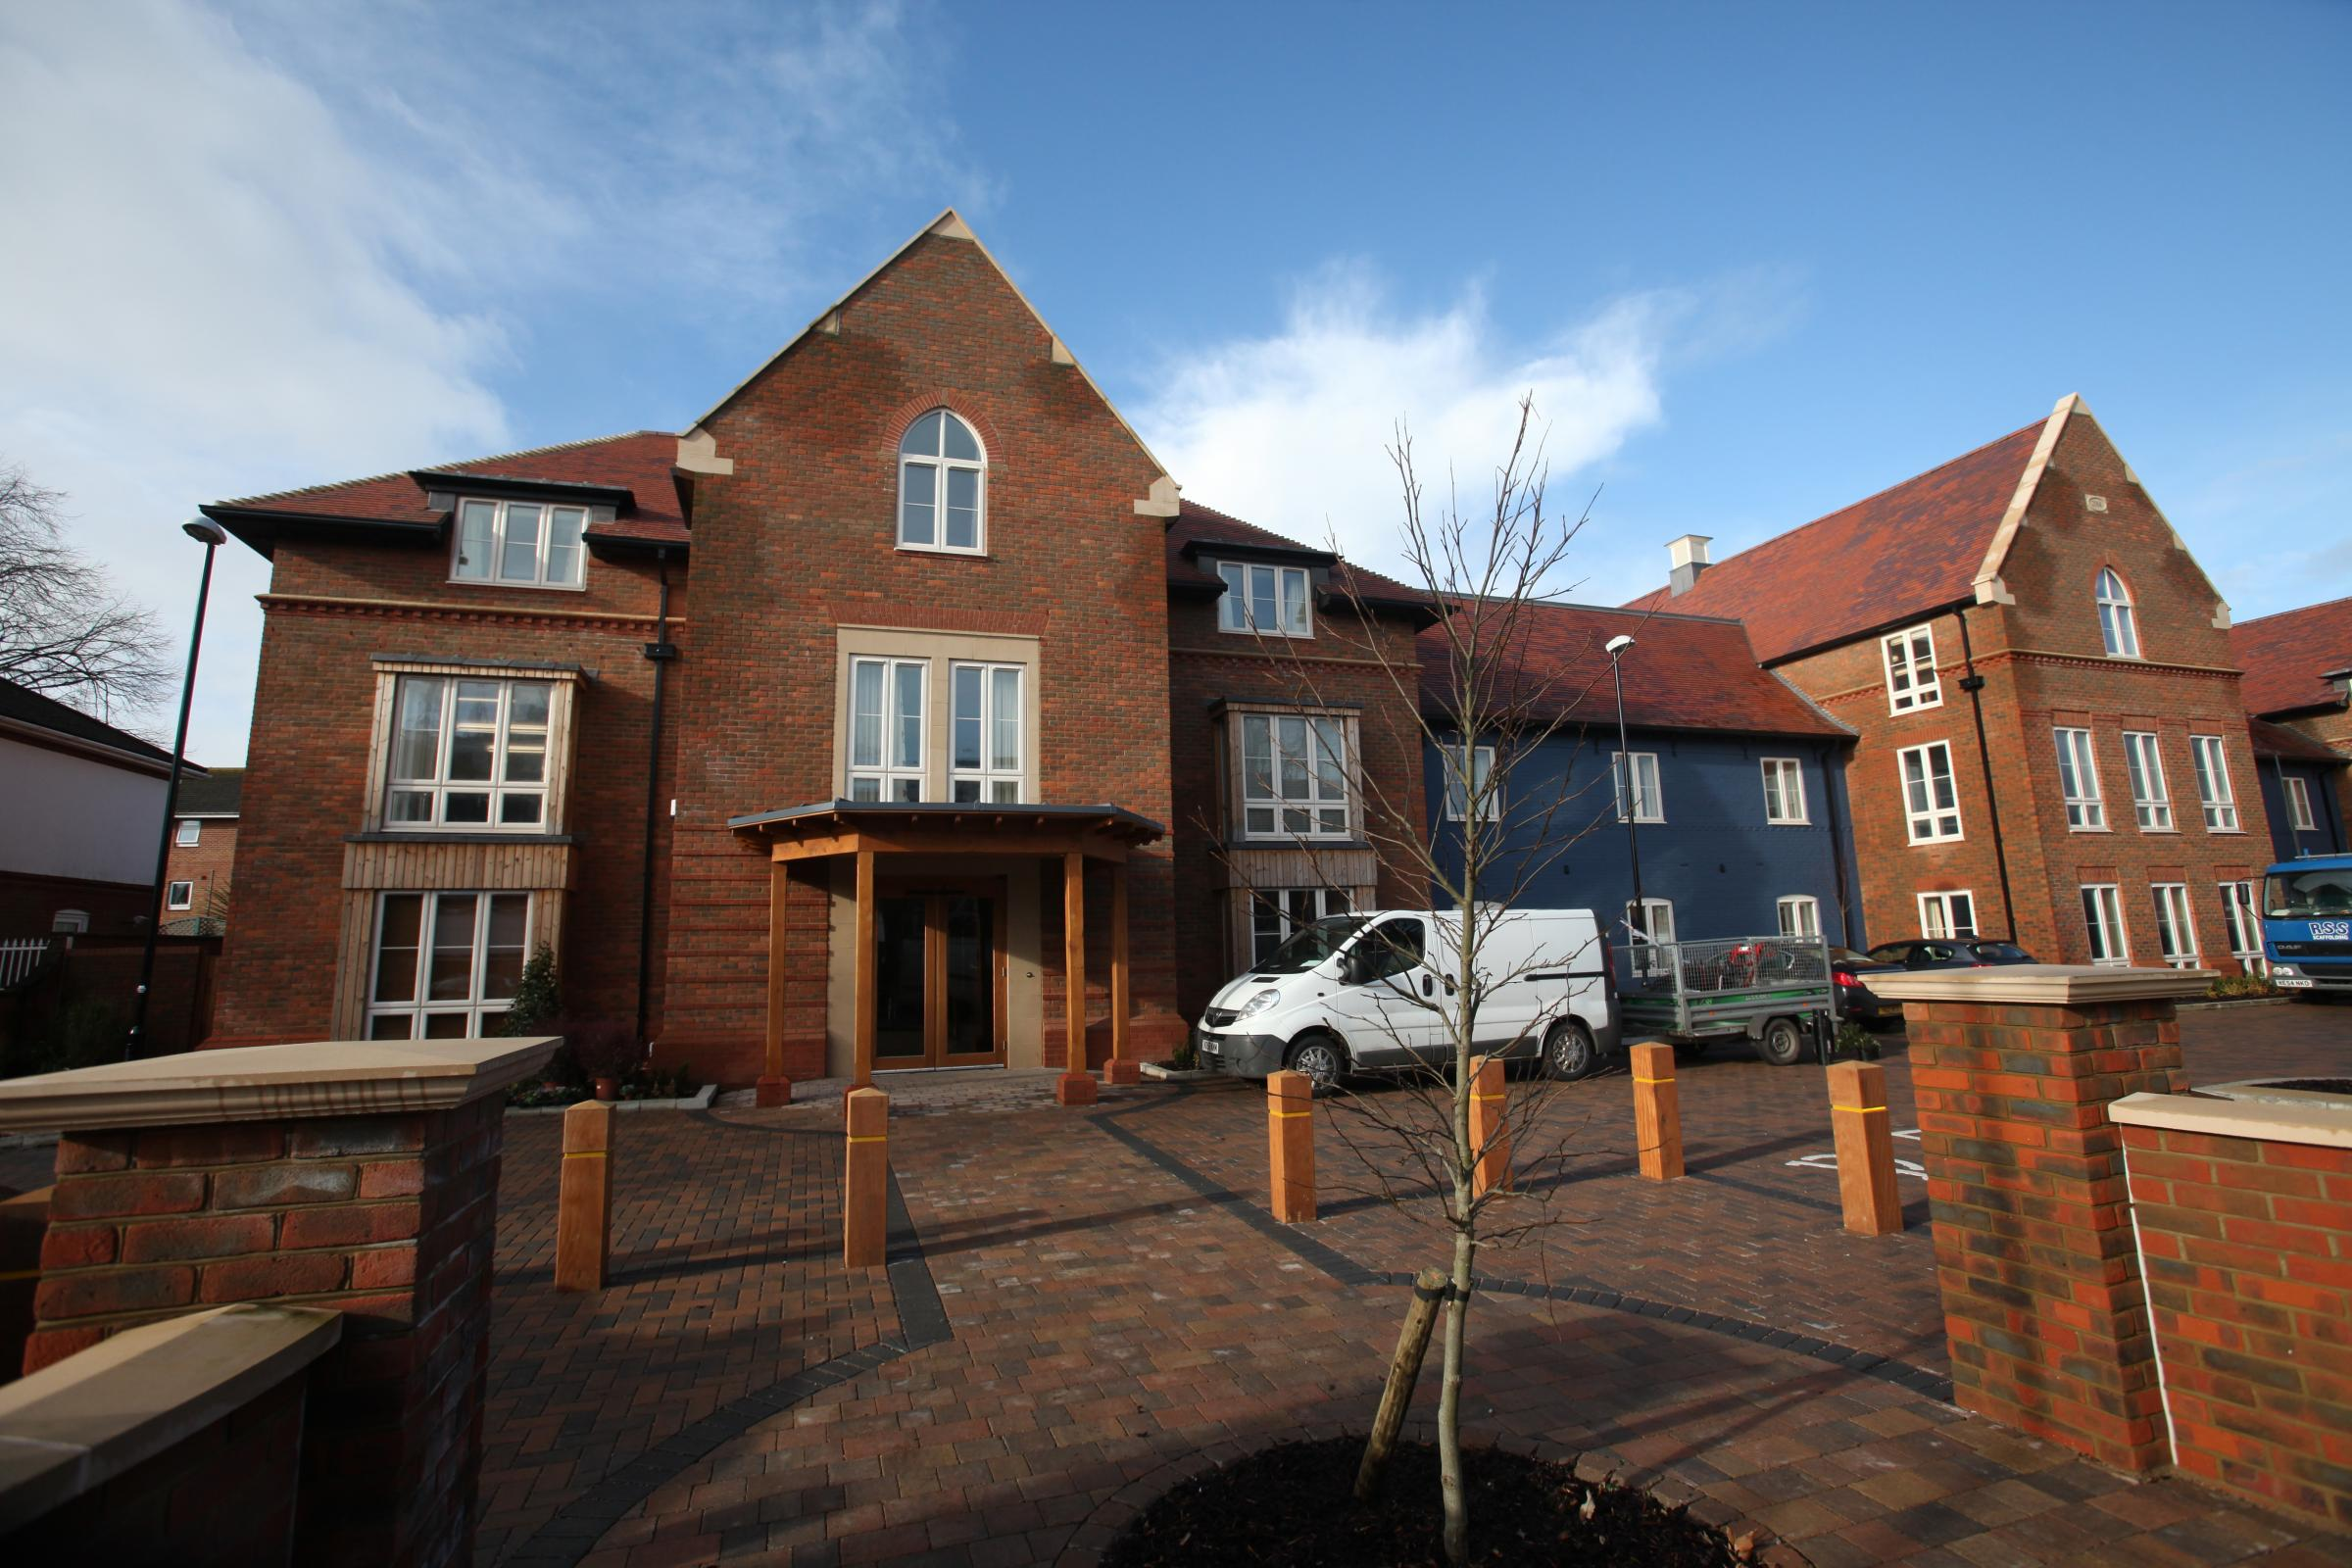 Linden House is the new site for Colten Care in Lymington